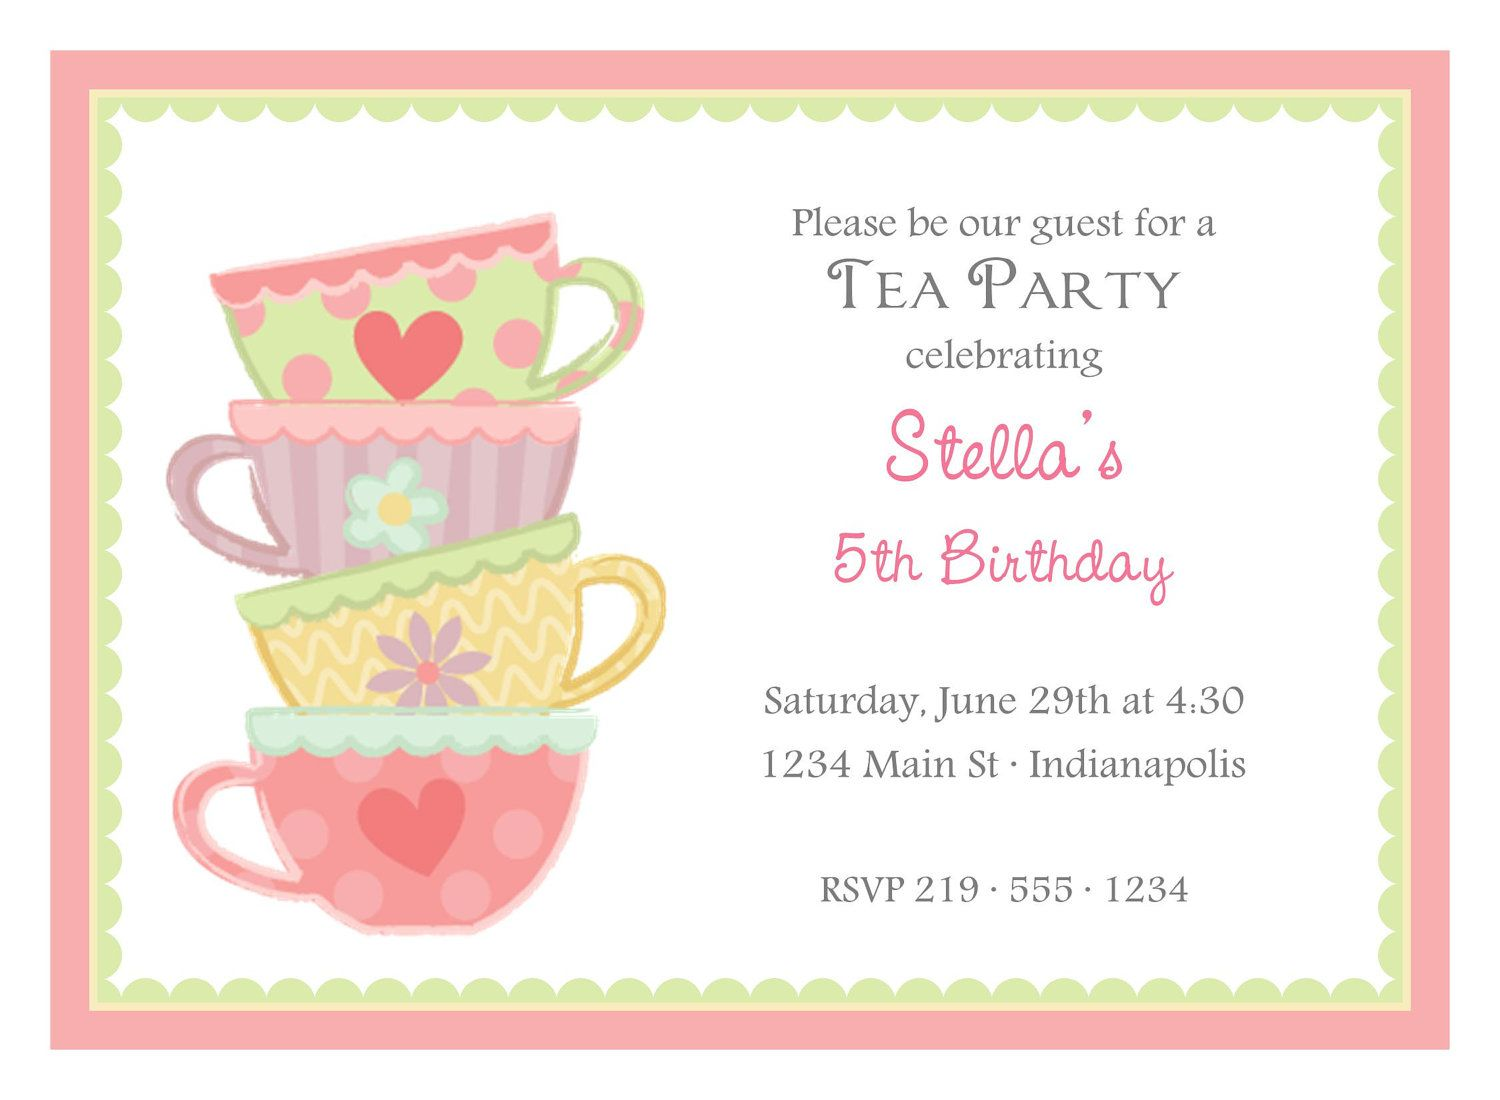 high tea party invitation printable | present ideas | pinterest, Party invitations